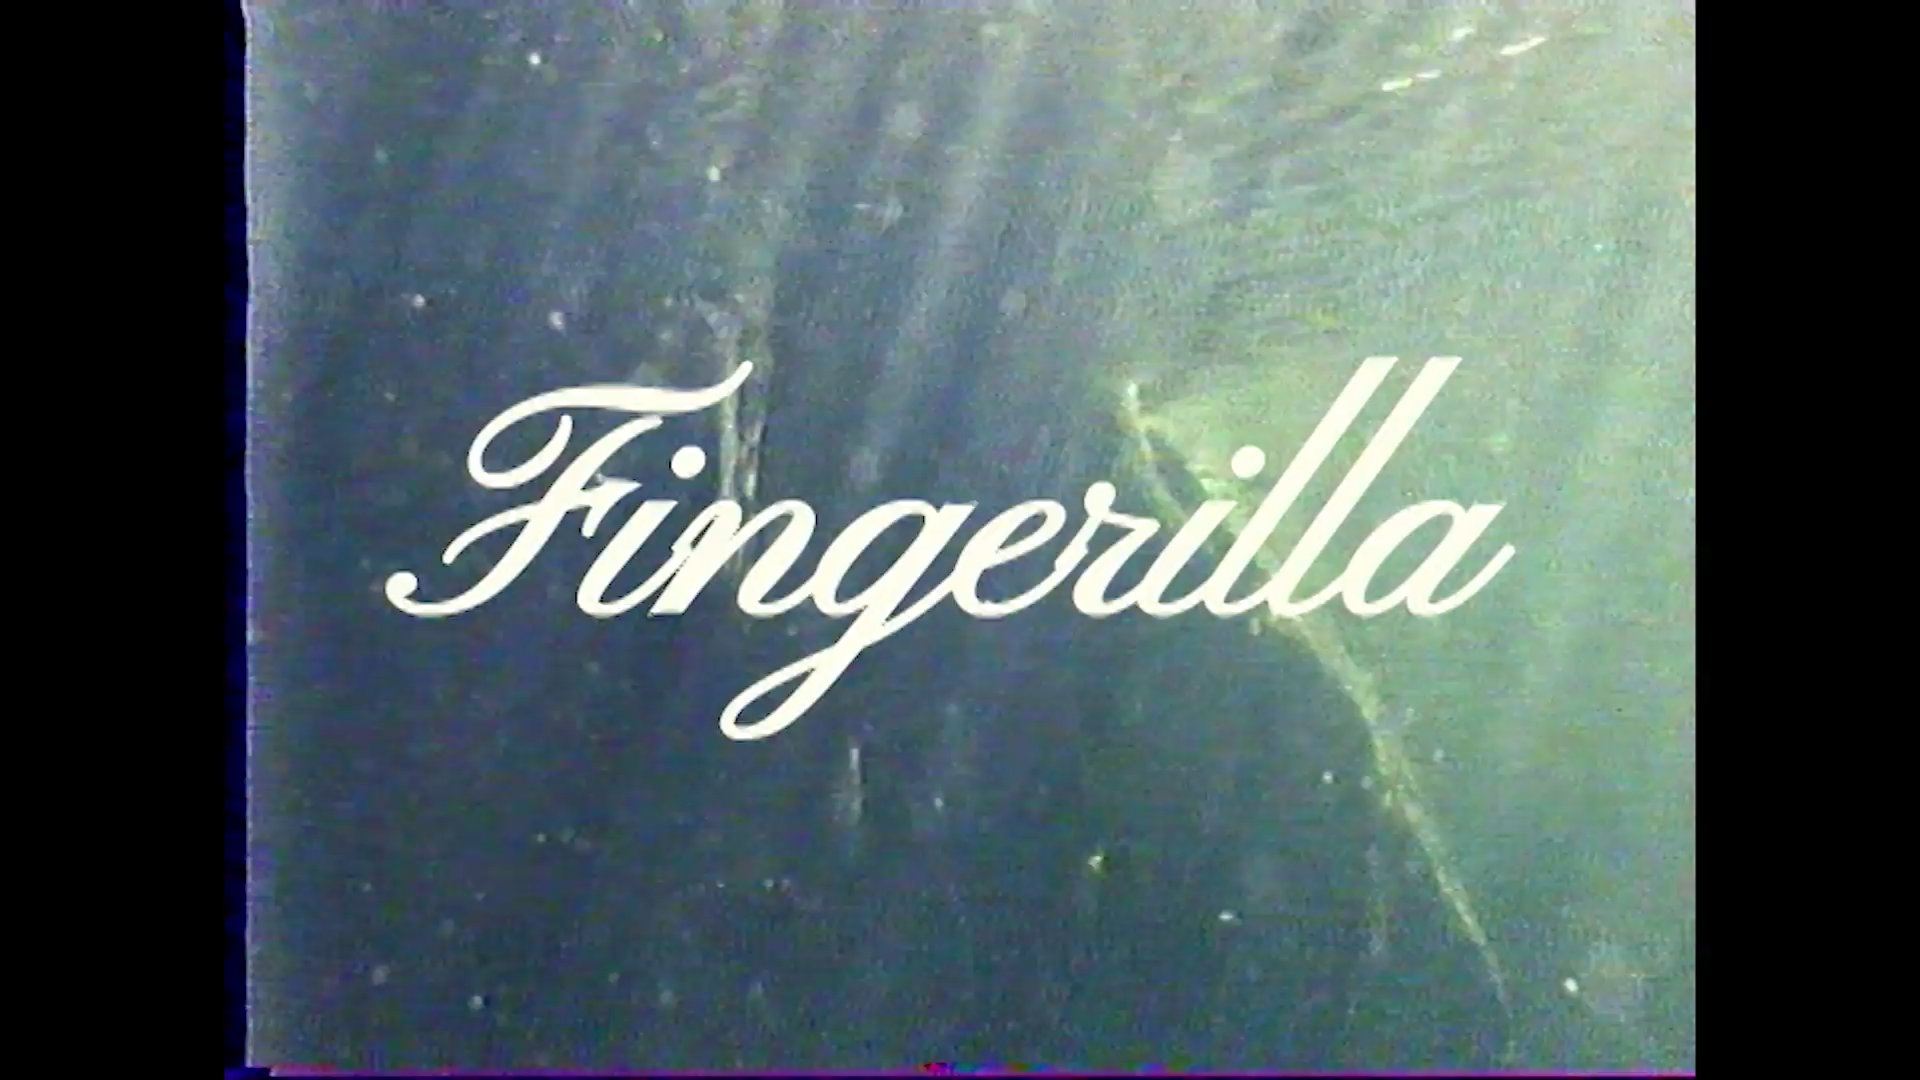 This is the title card for FINGERILLA.